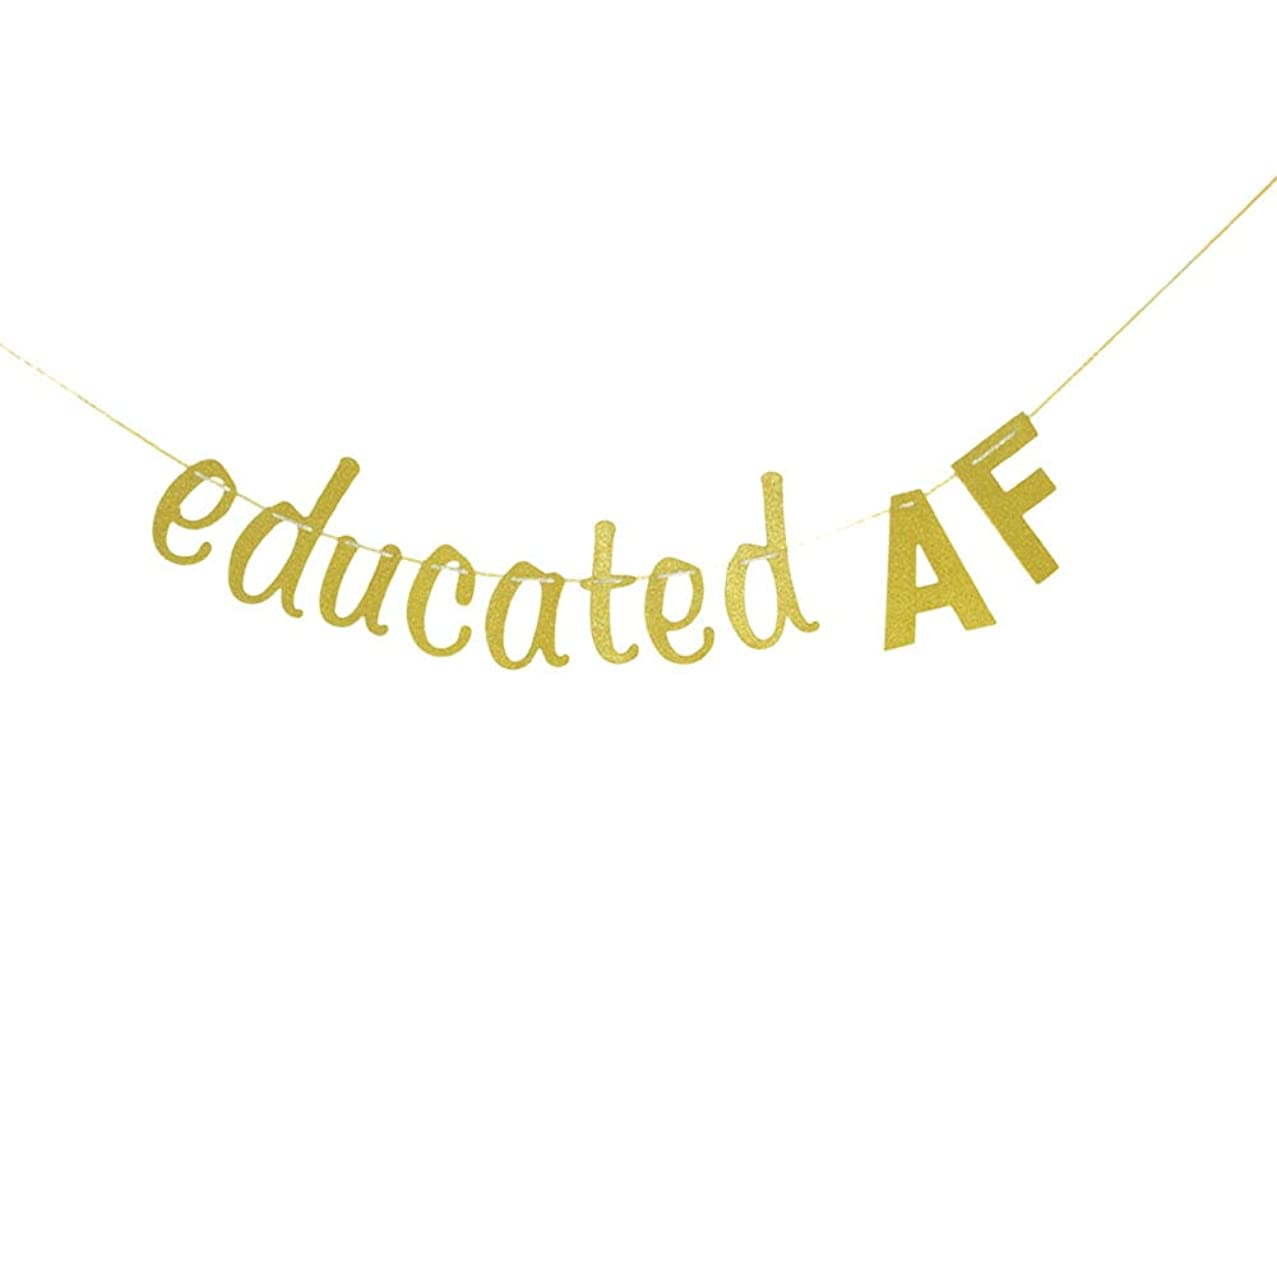 Educated AF Banner, Congrats Grad Bunting Sign, Graduation Party Decorations Graduate Supplies (Gold Glitter)